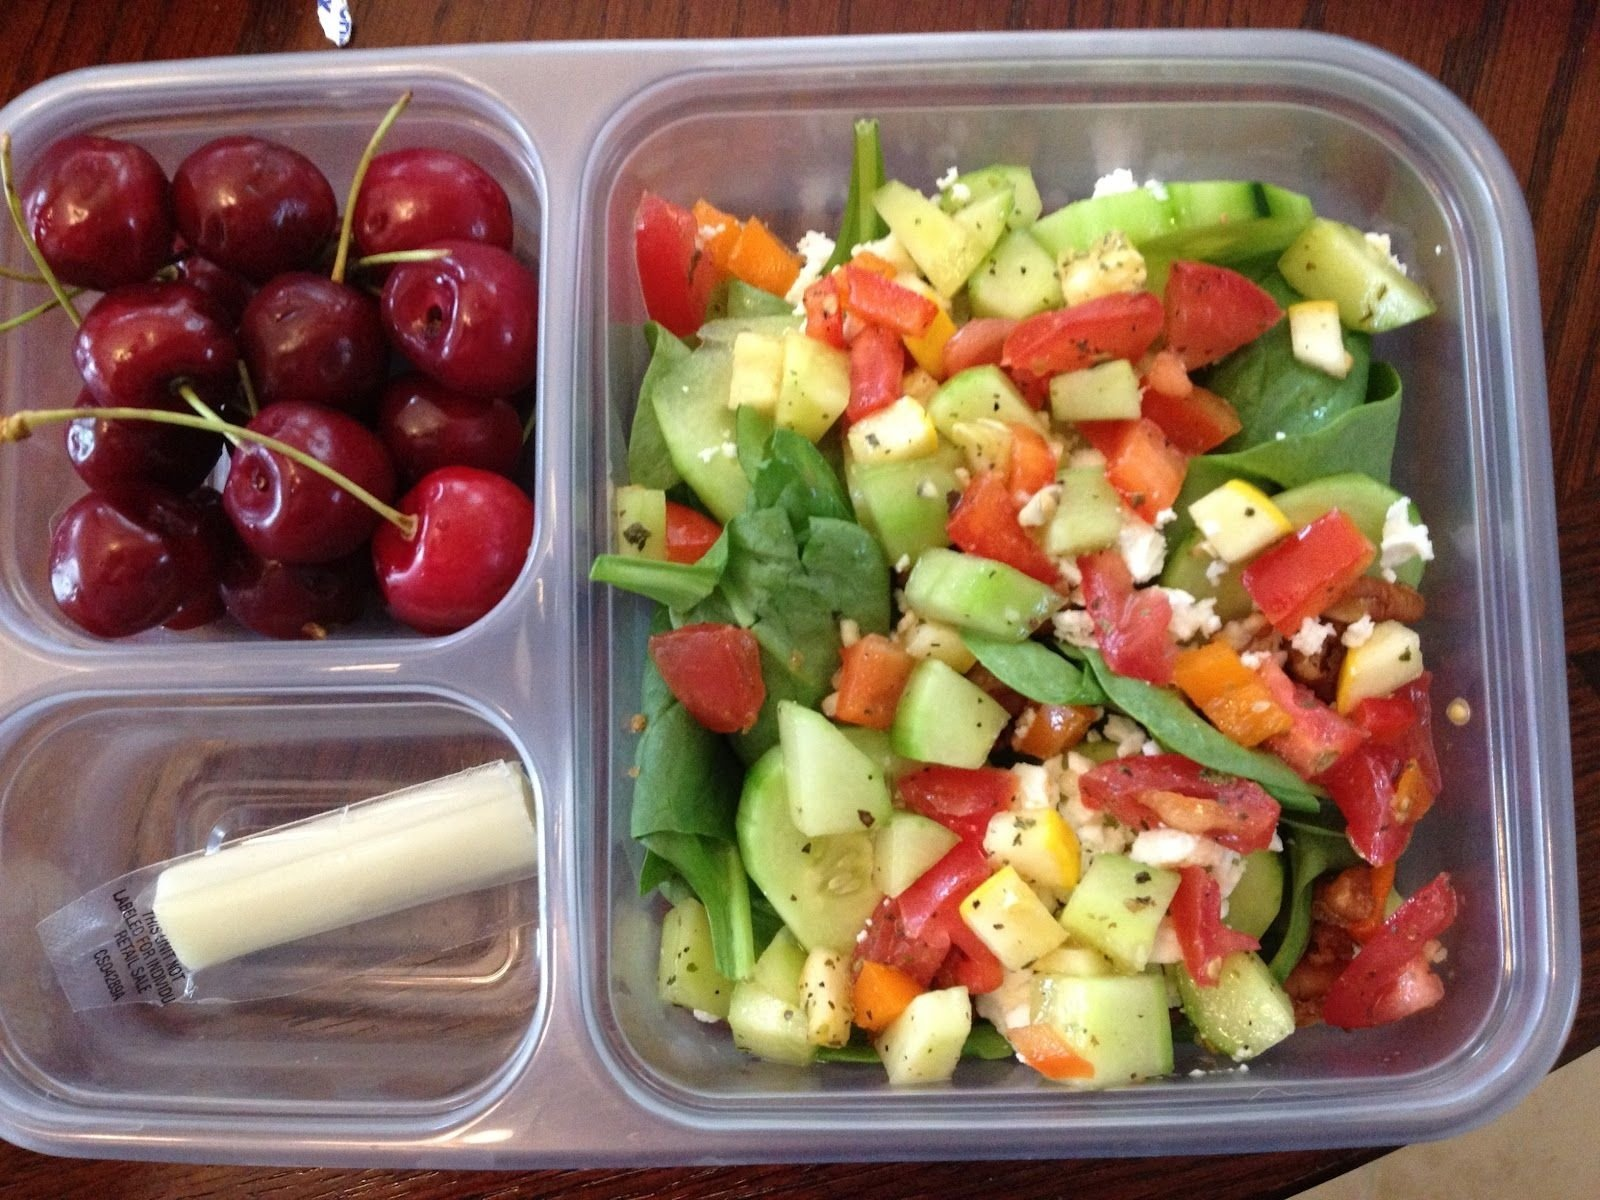 10 Unique Healthy Packed Lunch Ideas For Adults beautiful eats packed lunches for adults great healthy meal ideas 2021